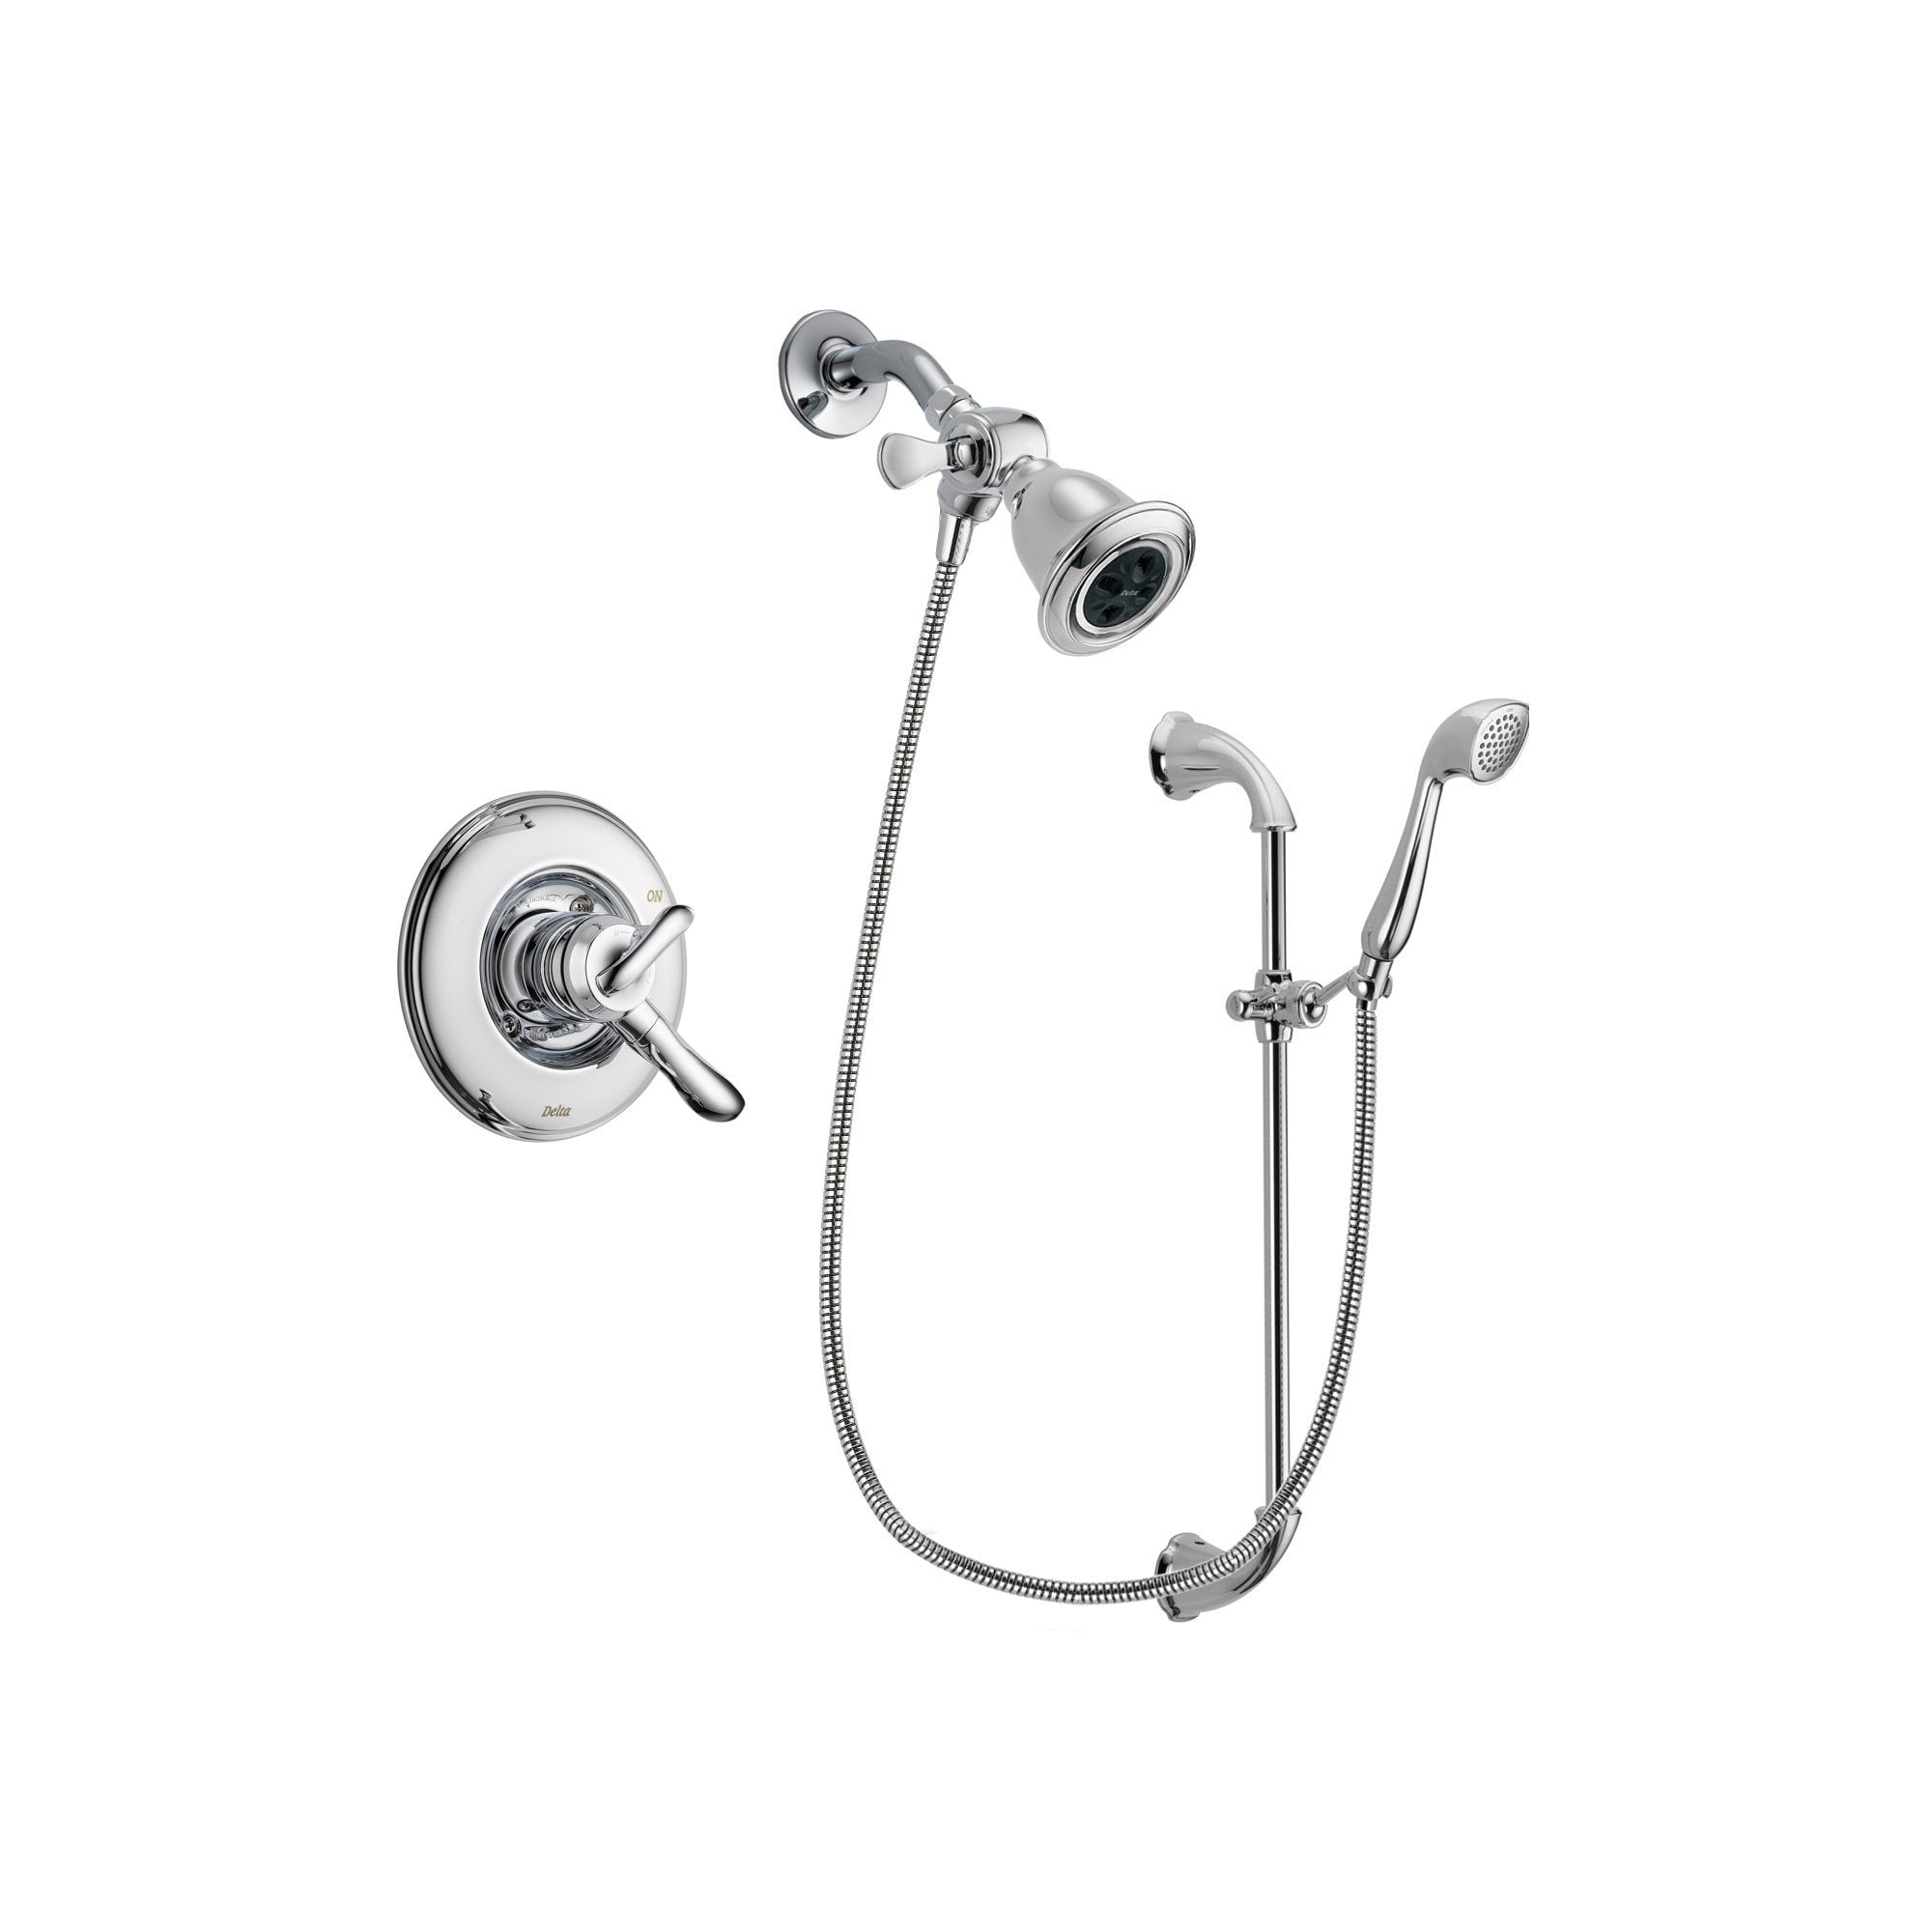 Delta Linden Chrome Shower Faucet System w/ Shower Head and Hand Shower DSP0898V